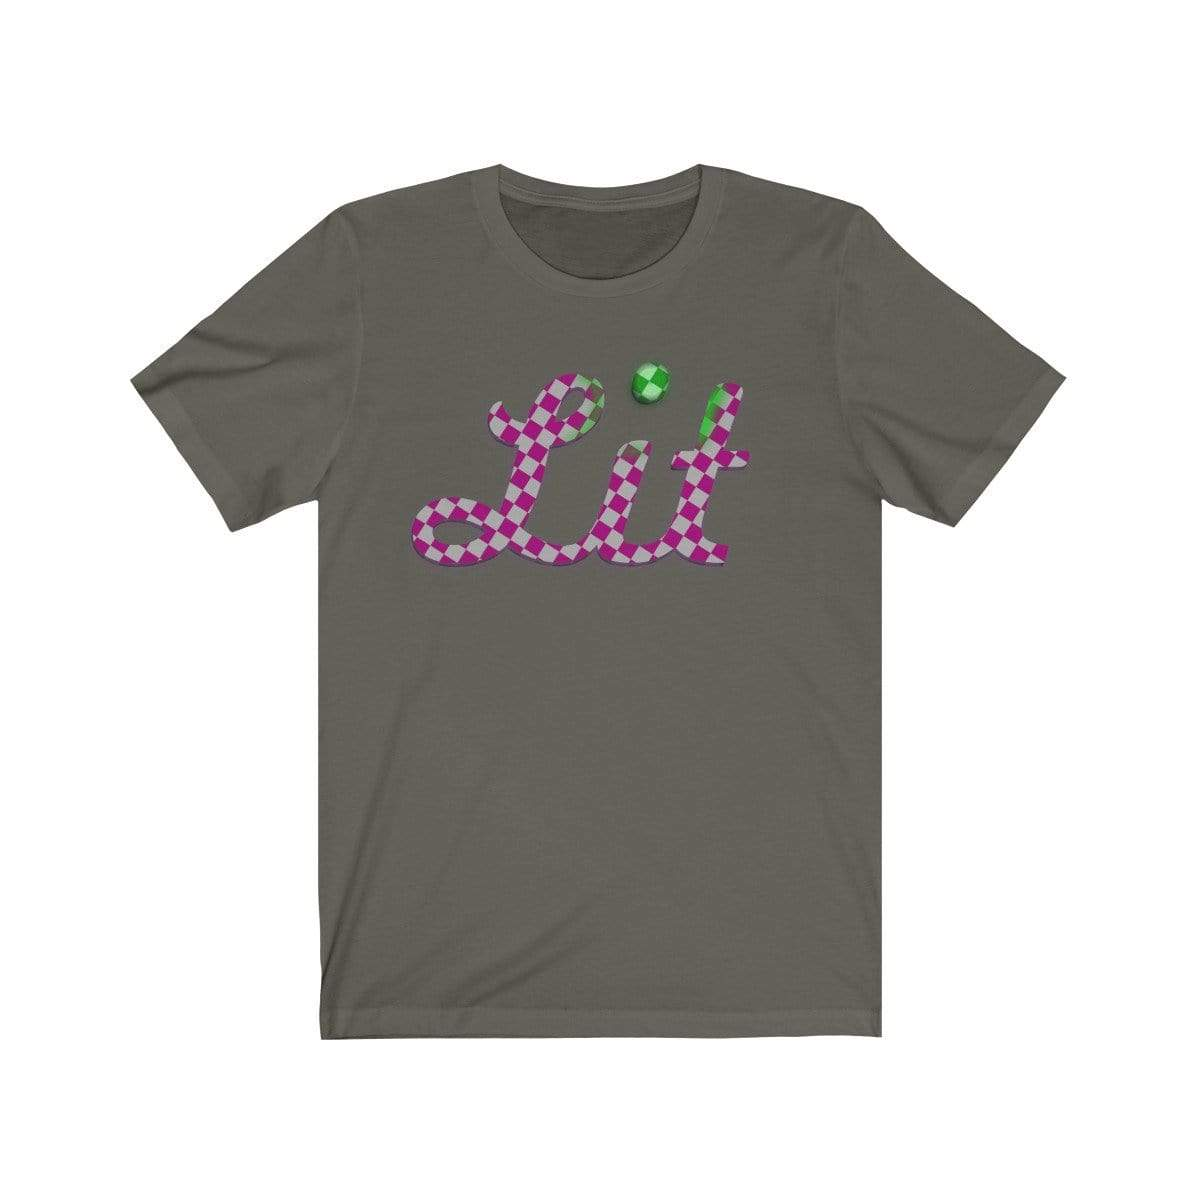 Plumskum T-Shirt Army / L Pink Checkered Lit T-shirt